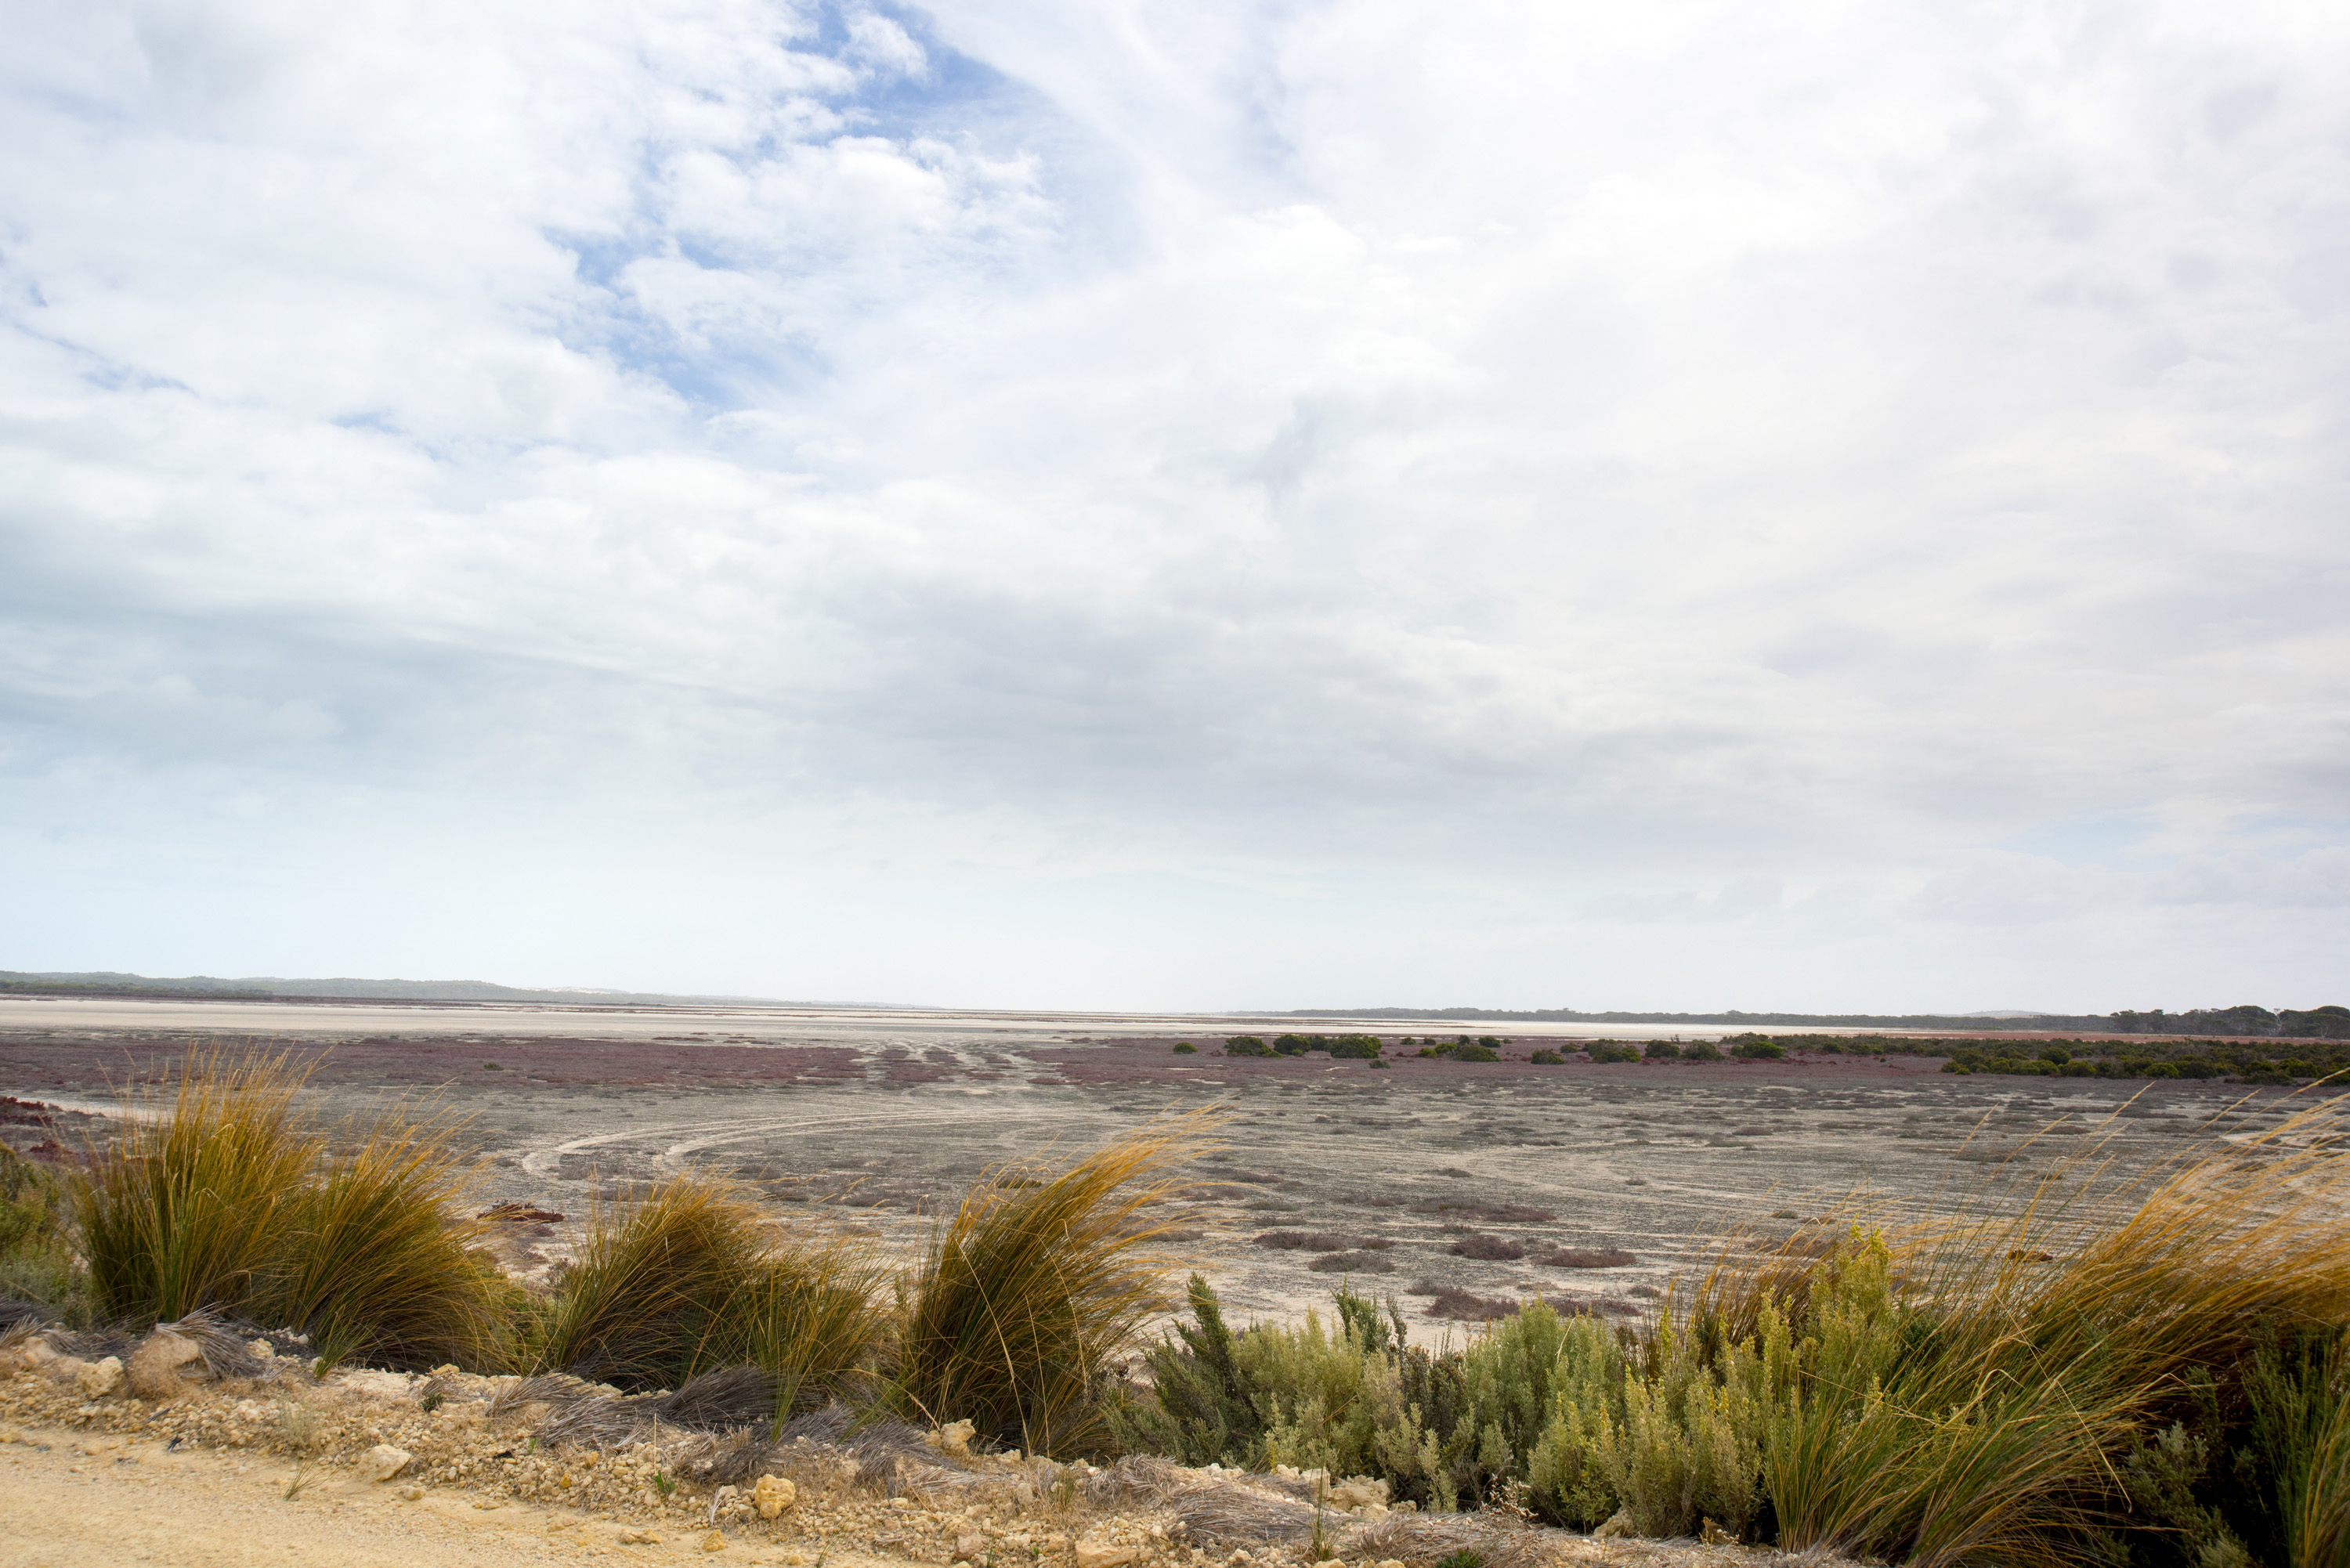 The coastline and vegetation at Coorong in the protected lagoon and beach ecosystem with fresh and salt water lakes and wetlands, South Australia with a view from a gravel road